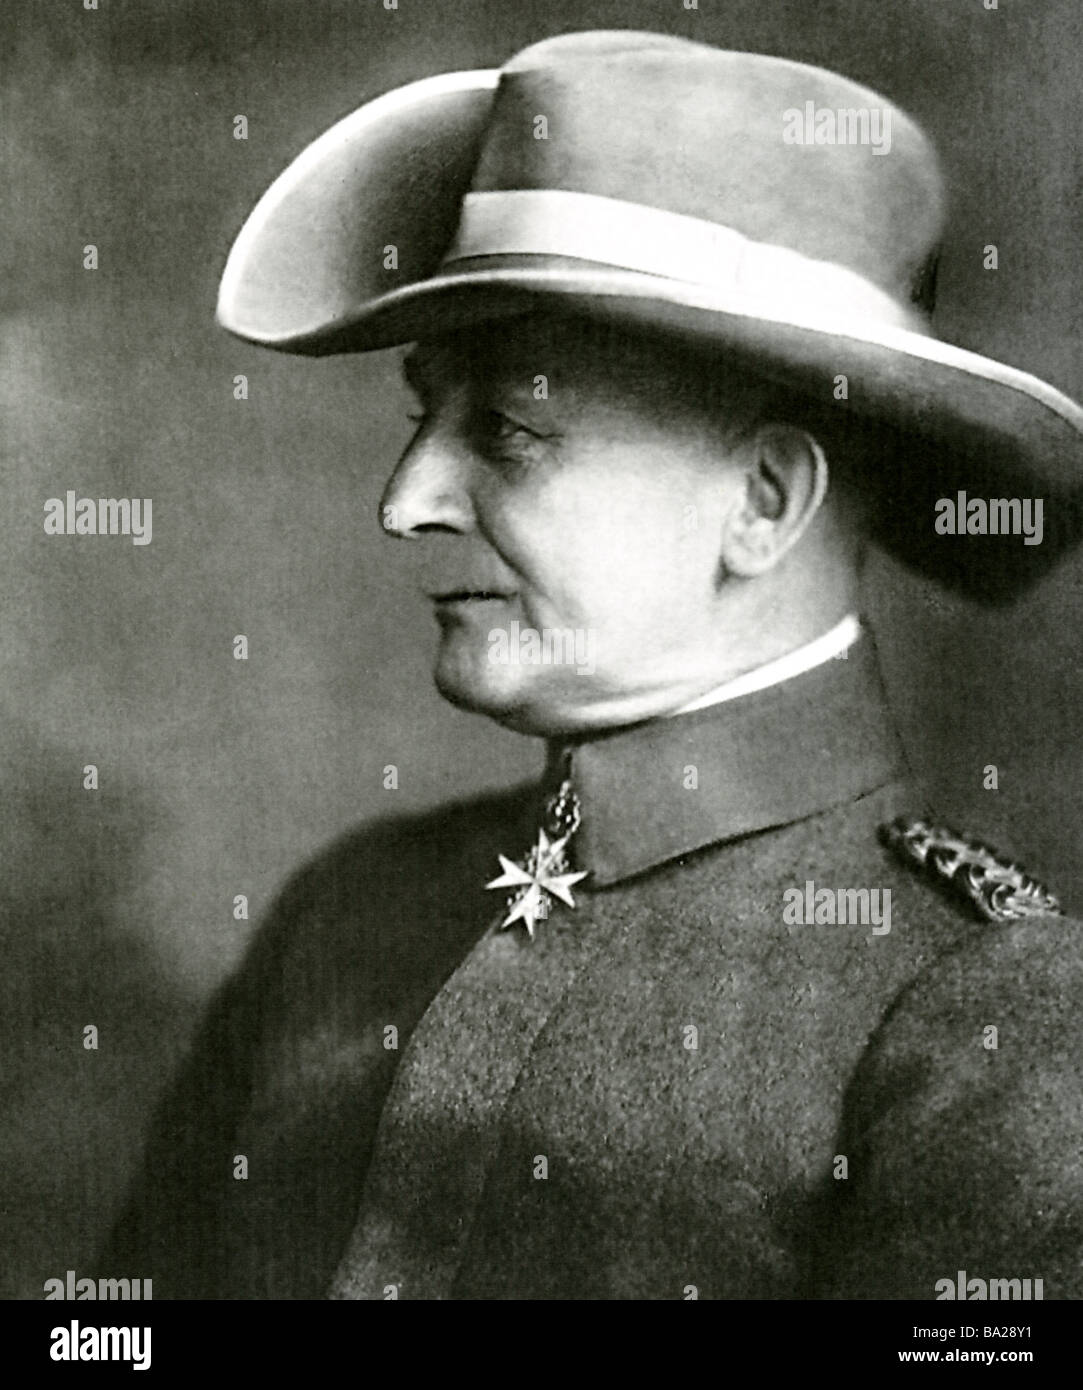 PAUL EMIL von LETTOW-VORBECK  (1870 - 1964) General who commanded the German forces in East Africa during World - Stock Image